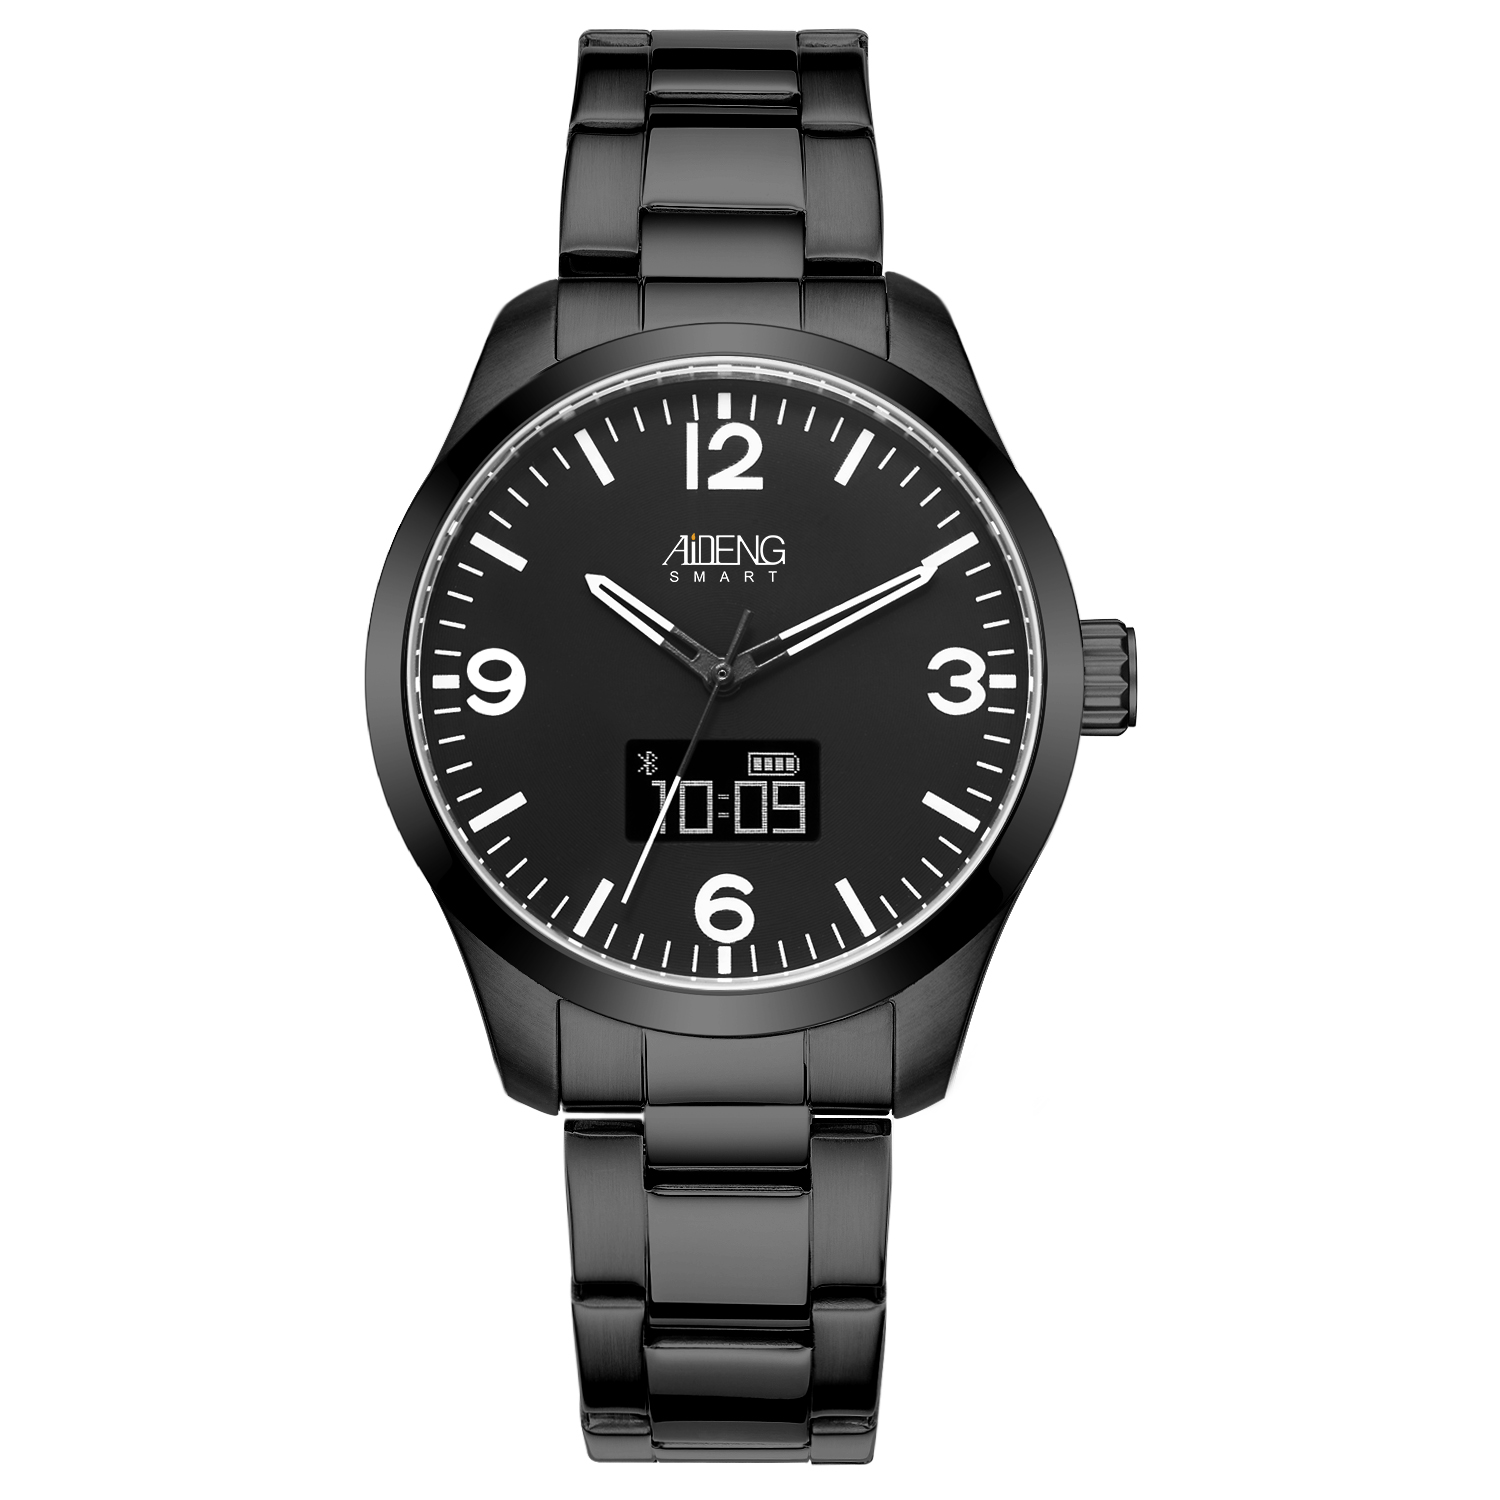 Smart watch 알림 function stainless steel case watch